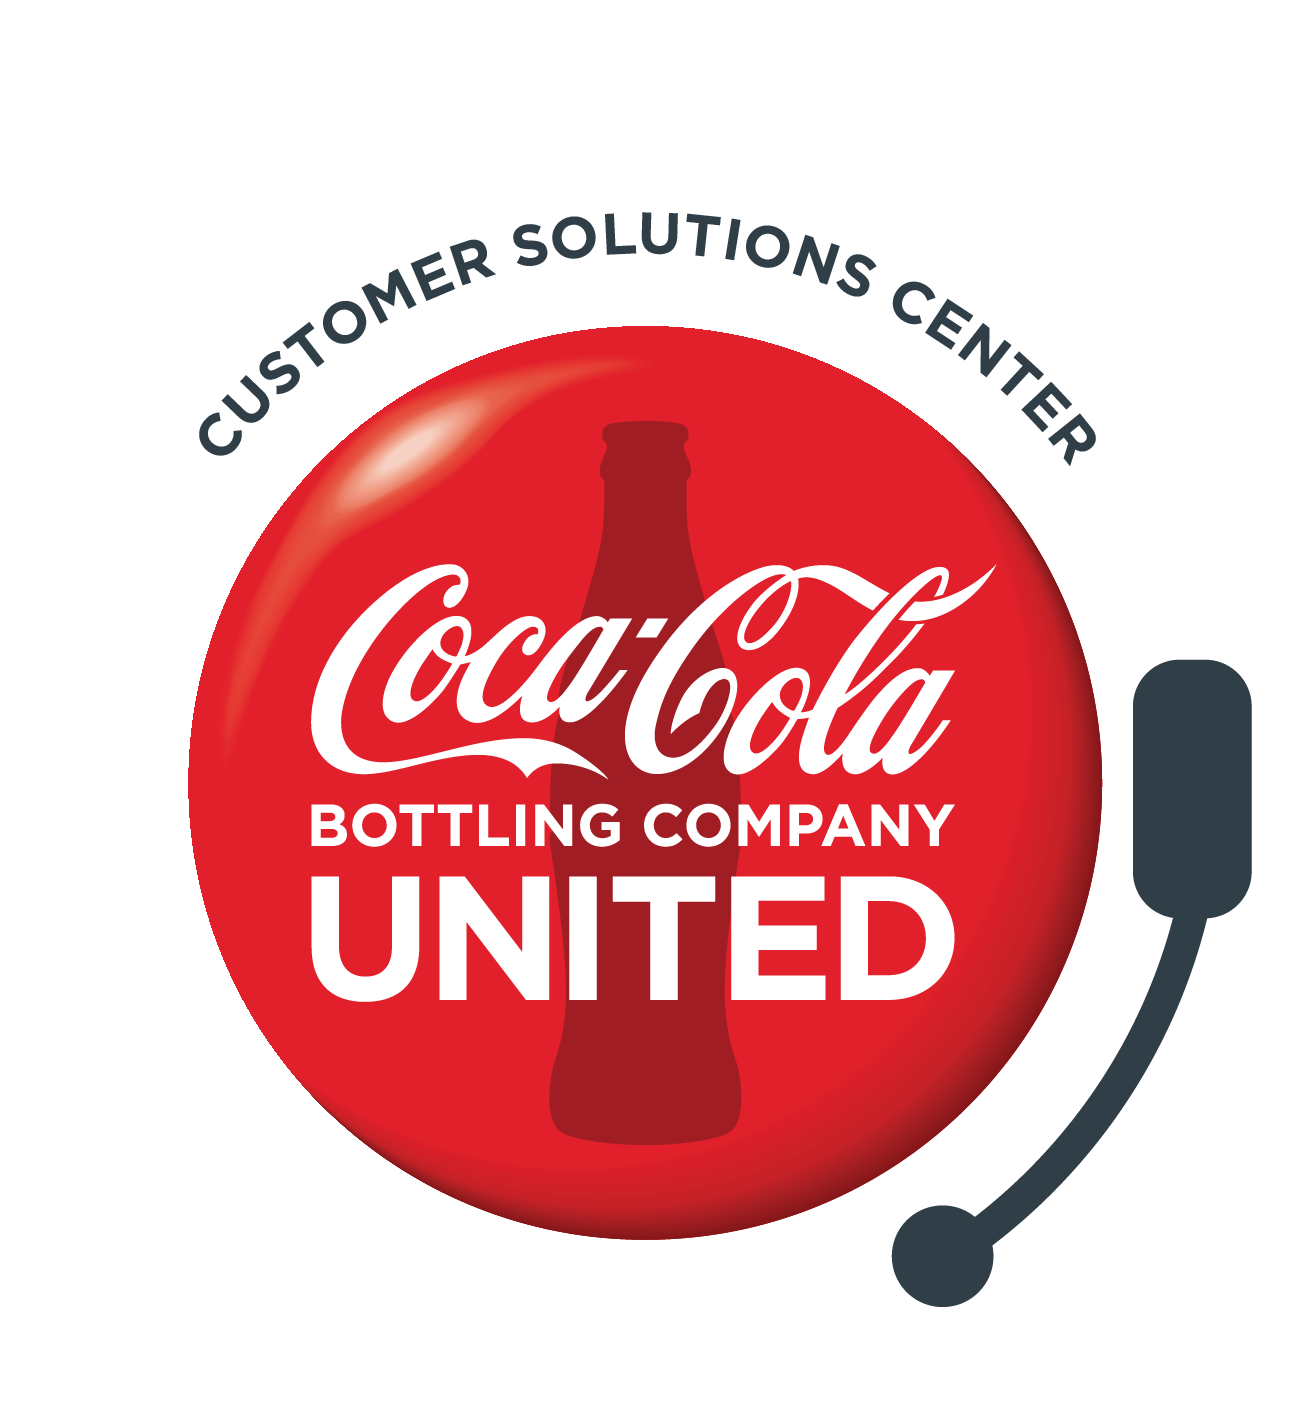 Customer Service, Customer Solutions, Service, UNITED